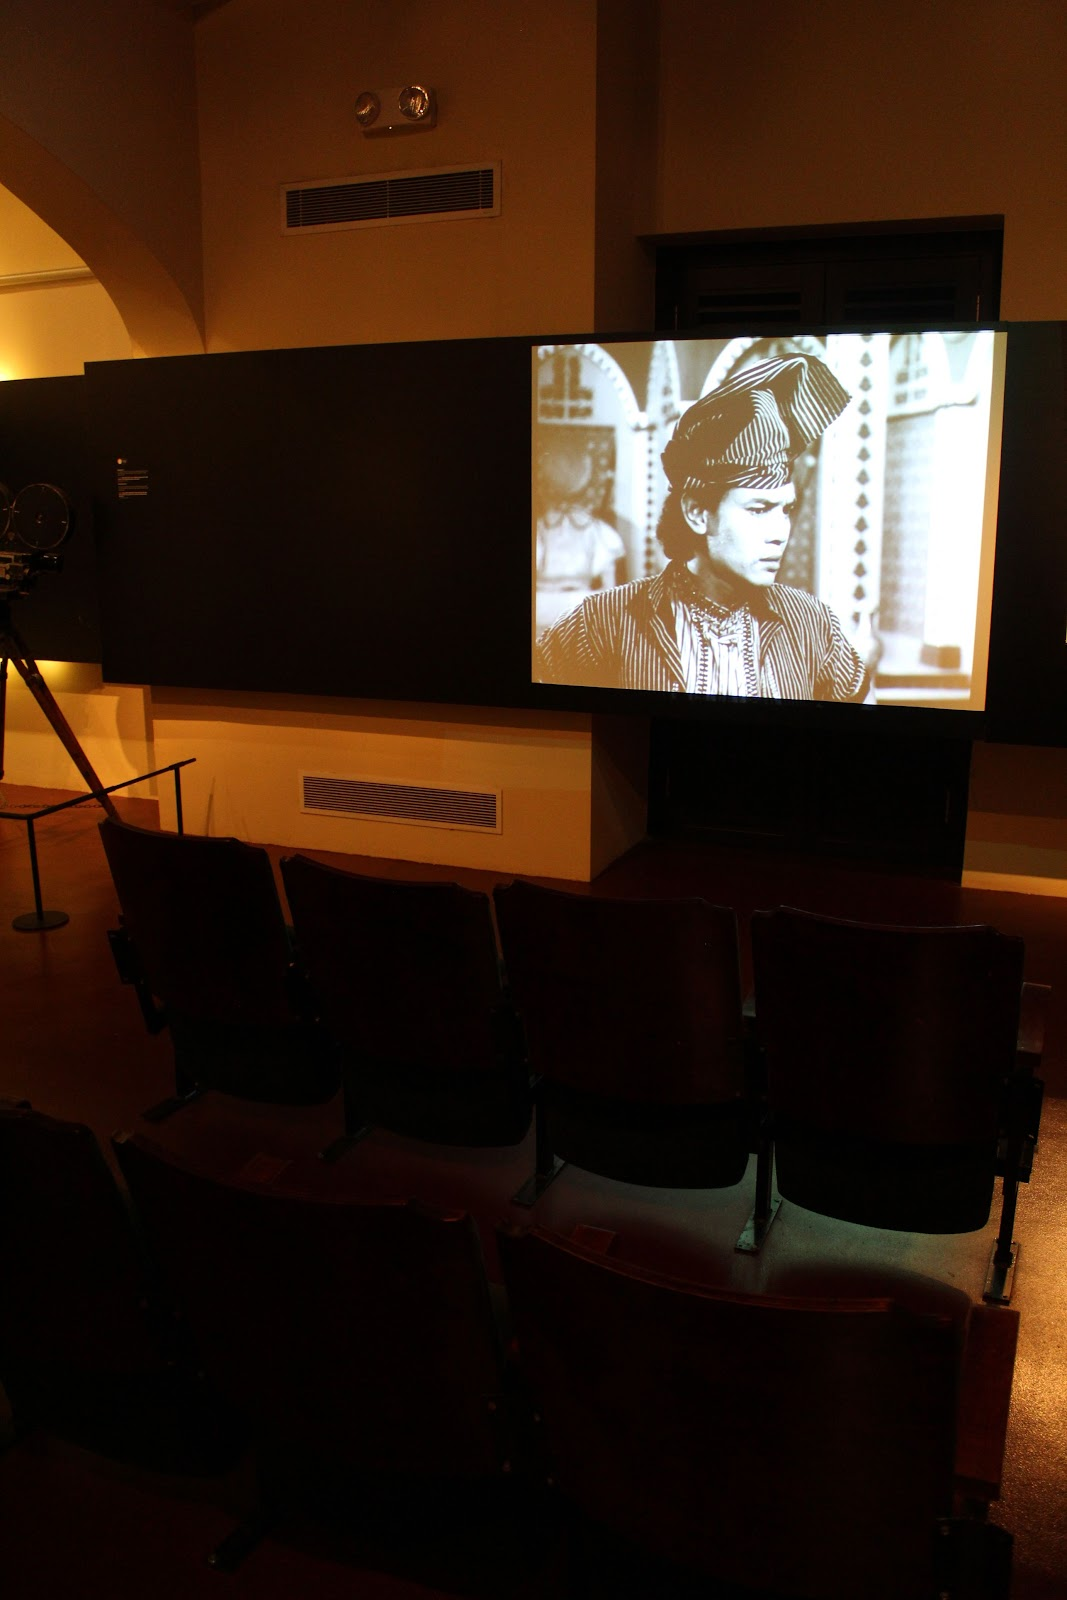 Seating facing a black and white screen, playing an old Malay film